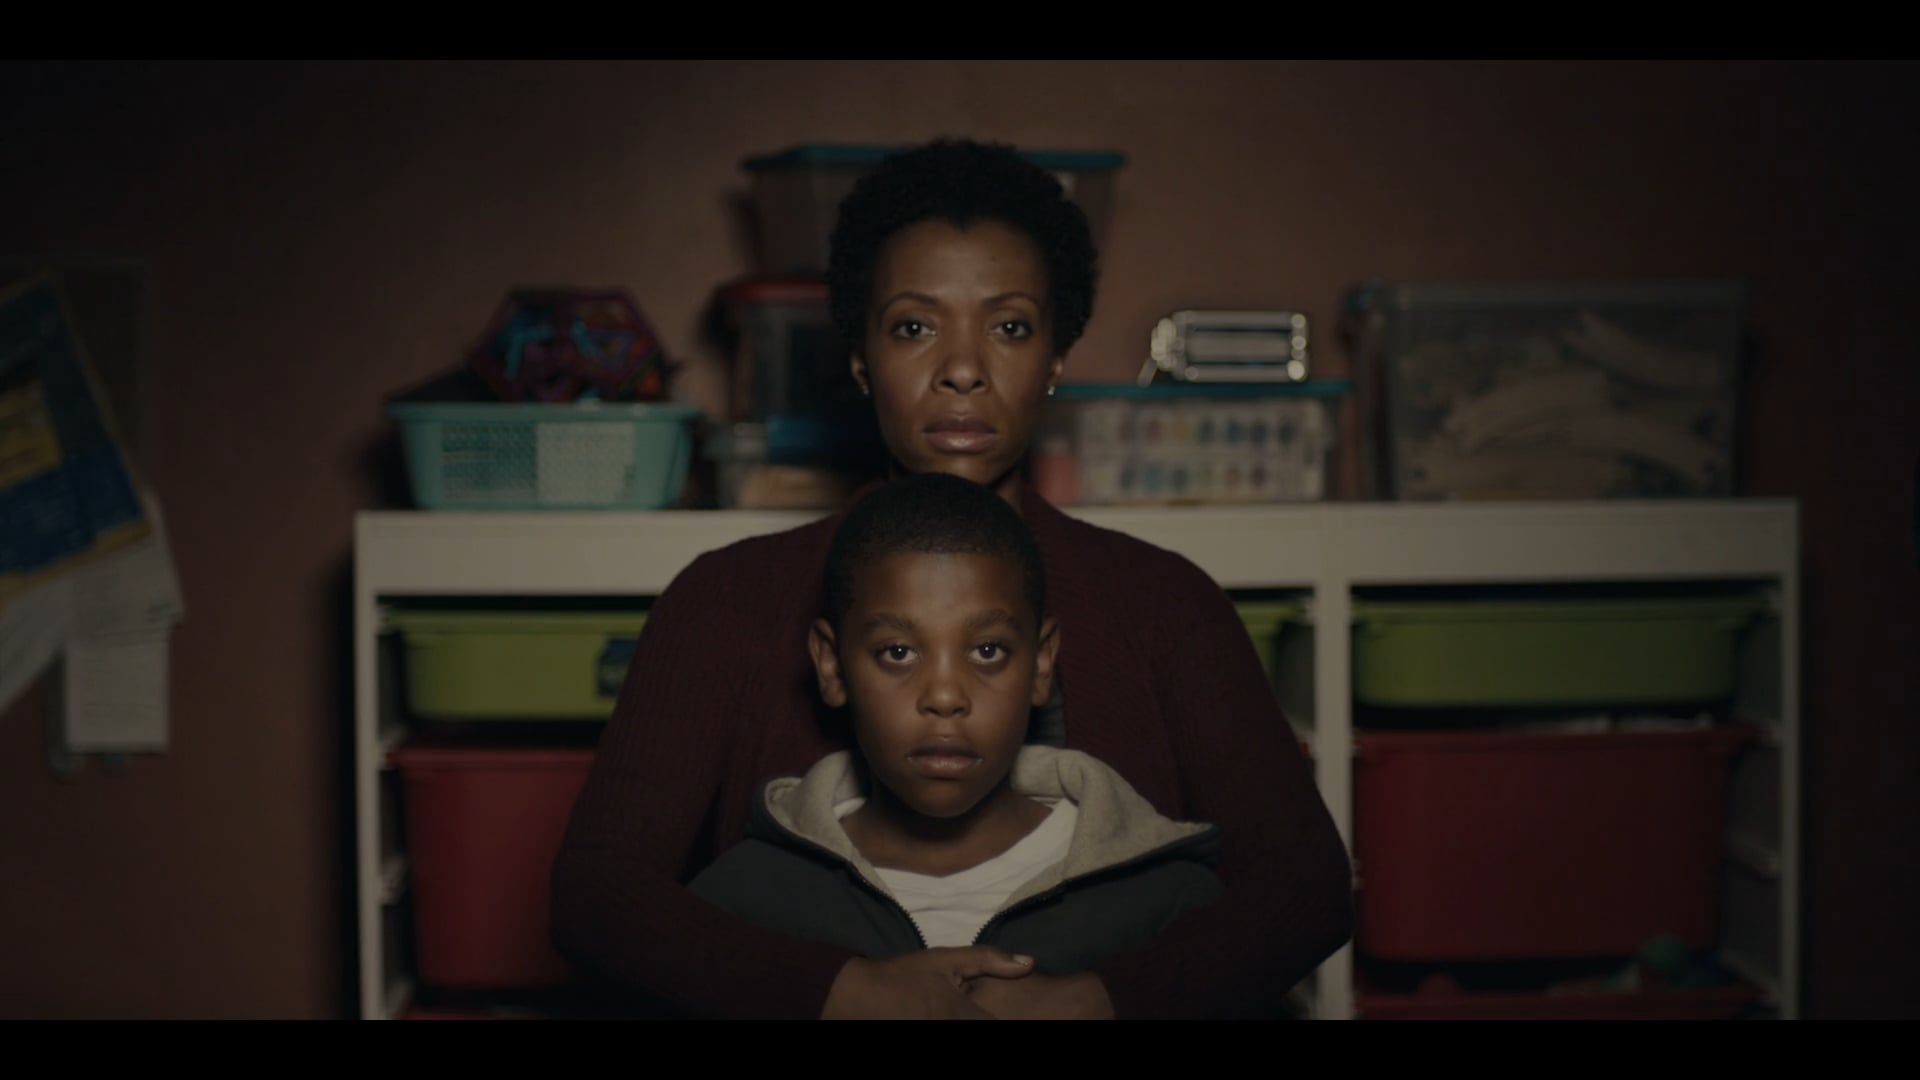 How Do You Raise A Black Child?   Poem by Cortney Lamar Charleston   Film by Seyi Peter Thomas of Station Film